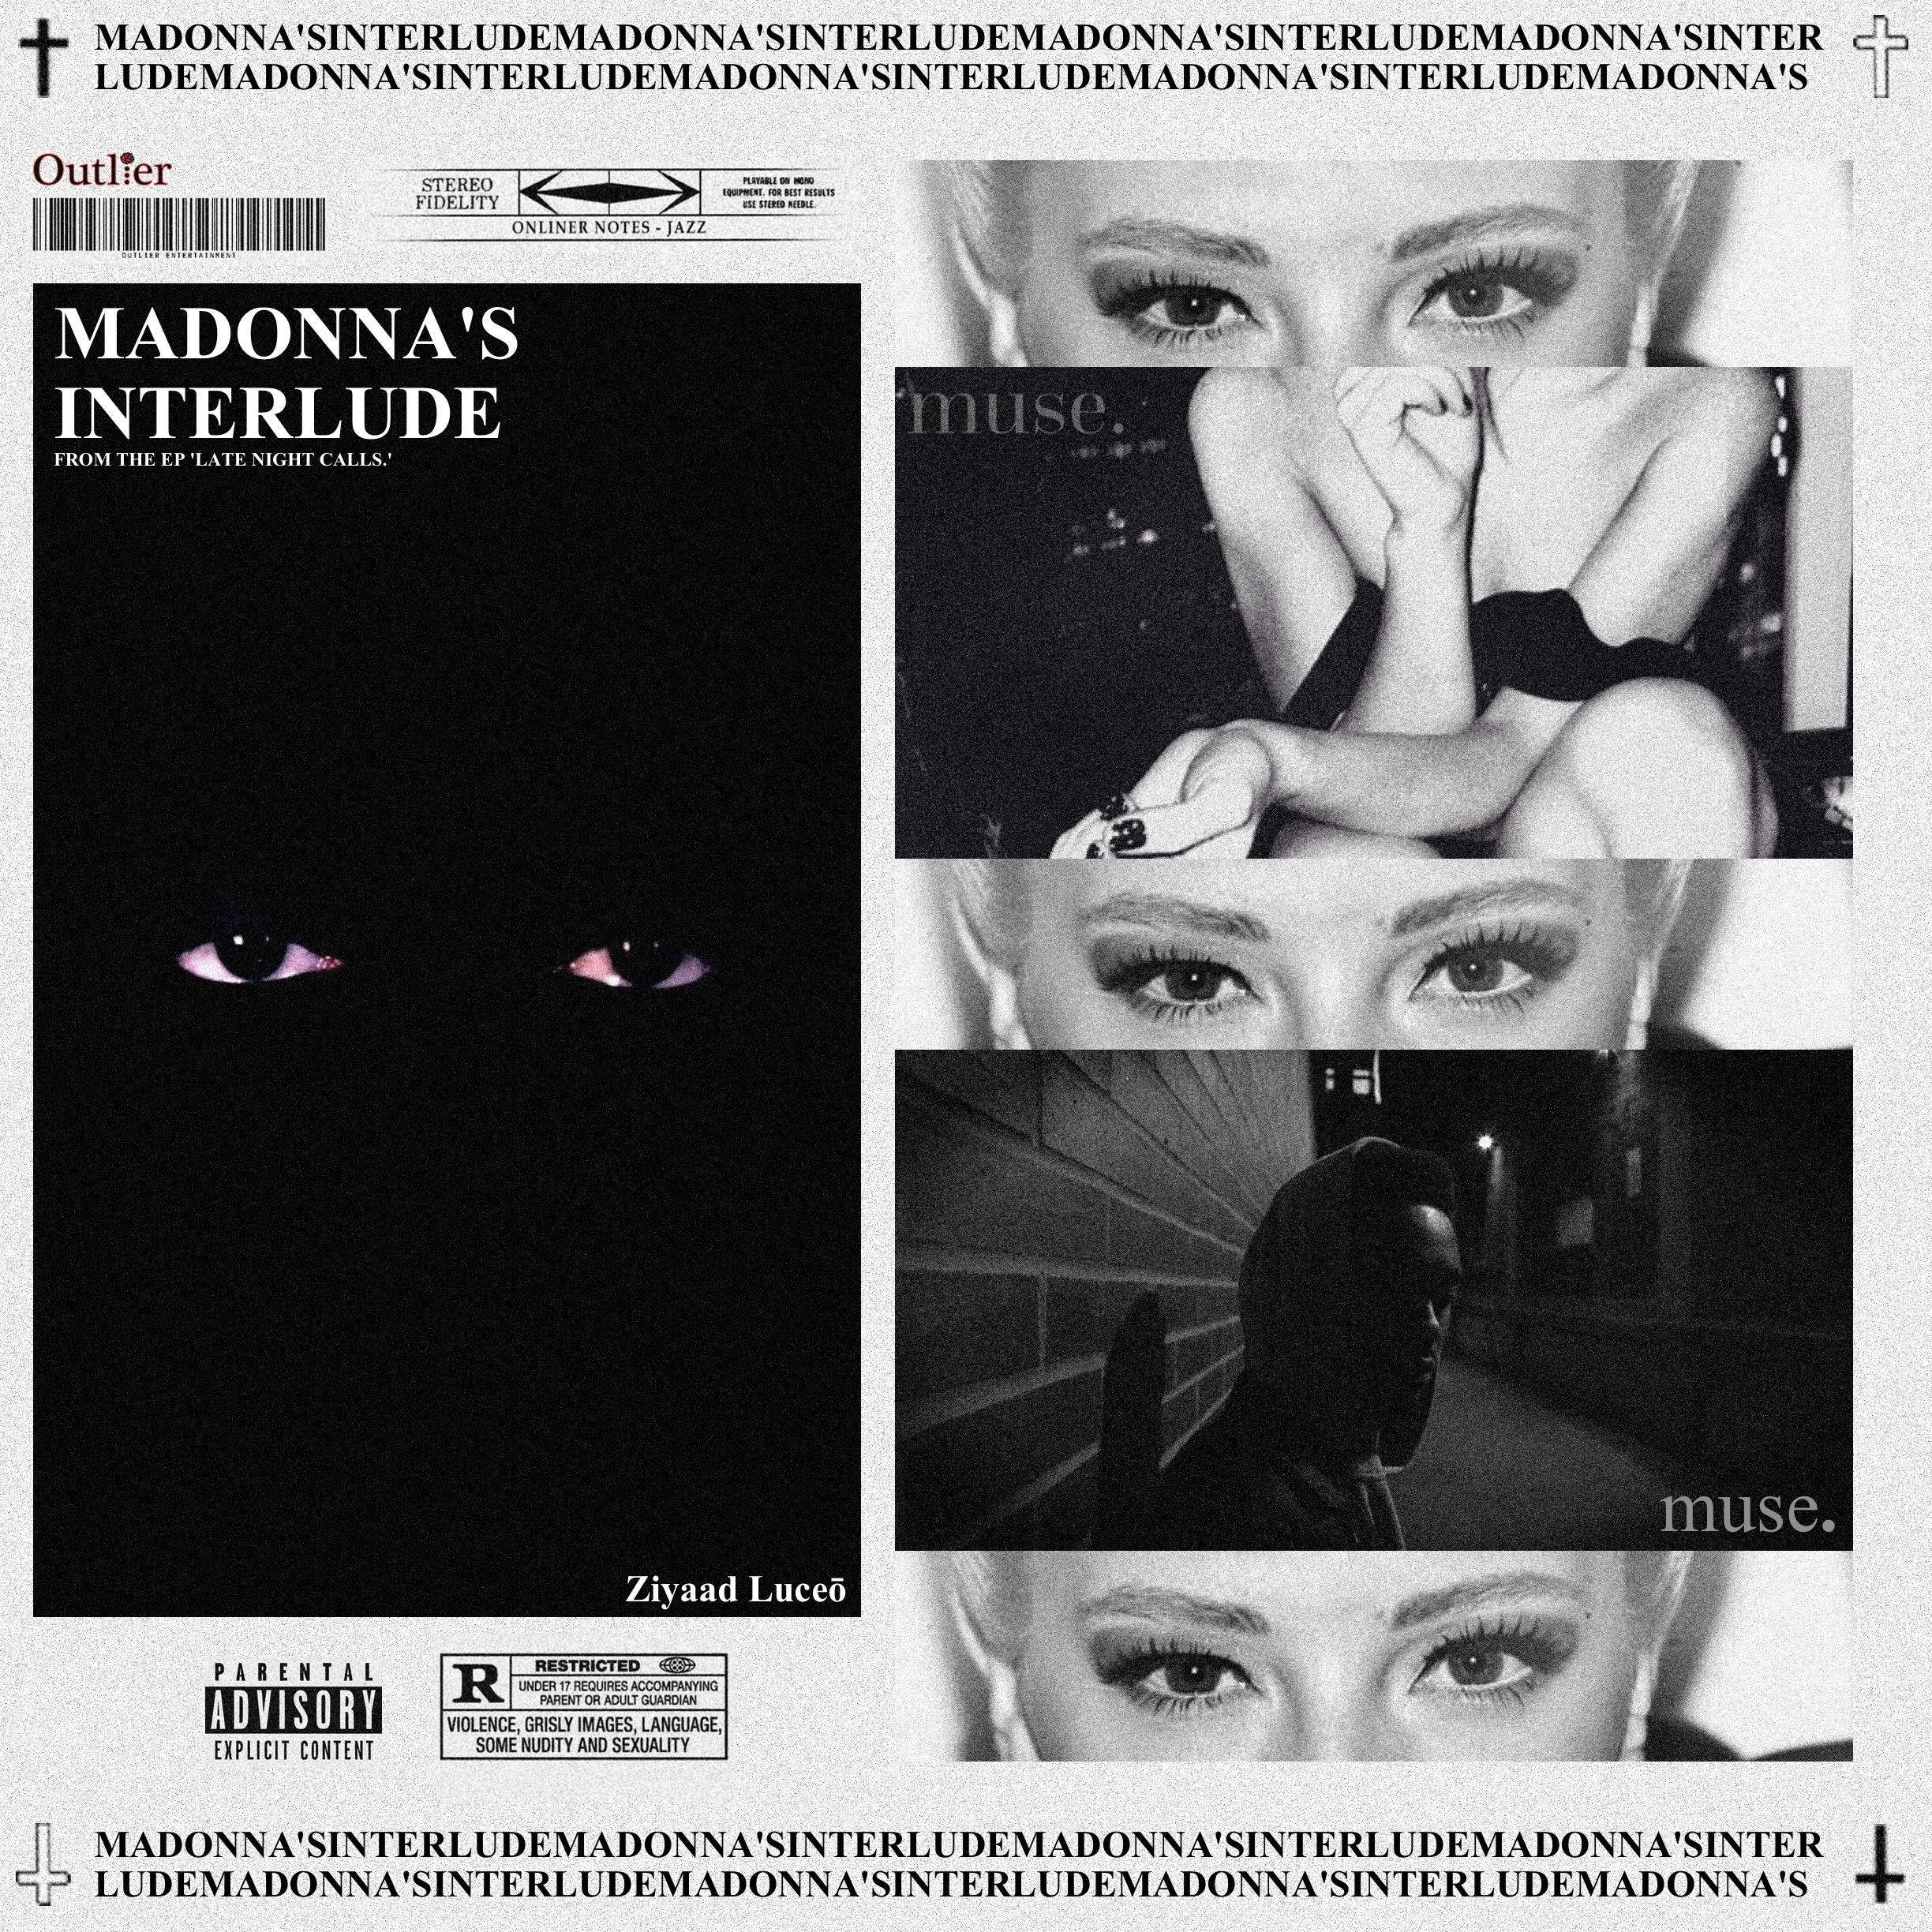 """Toronto's up and coming R&B artist, Ziyaad Luceō, releases his final single """"Madonna's Interlude"""" from his forthcoming debut EP, """"Late Night Calls""""."""